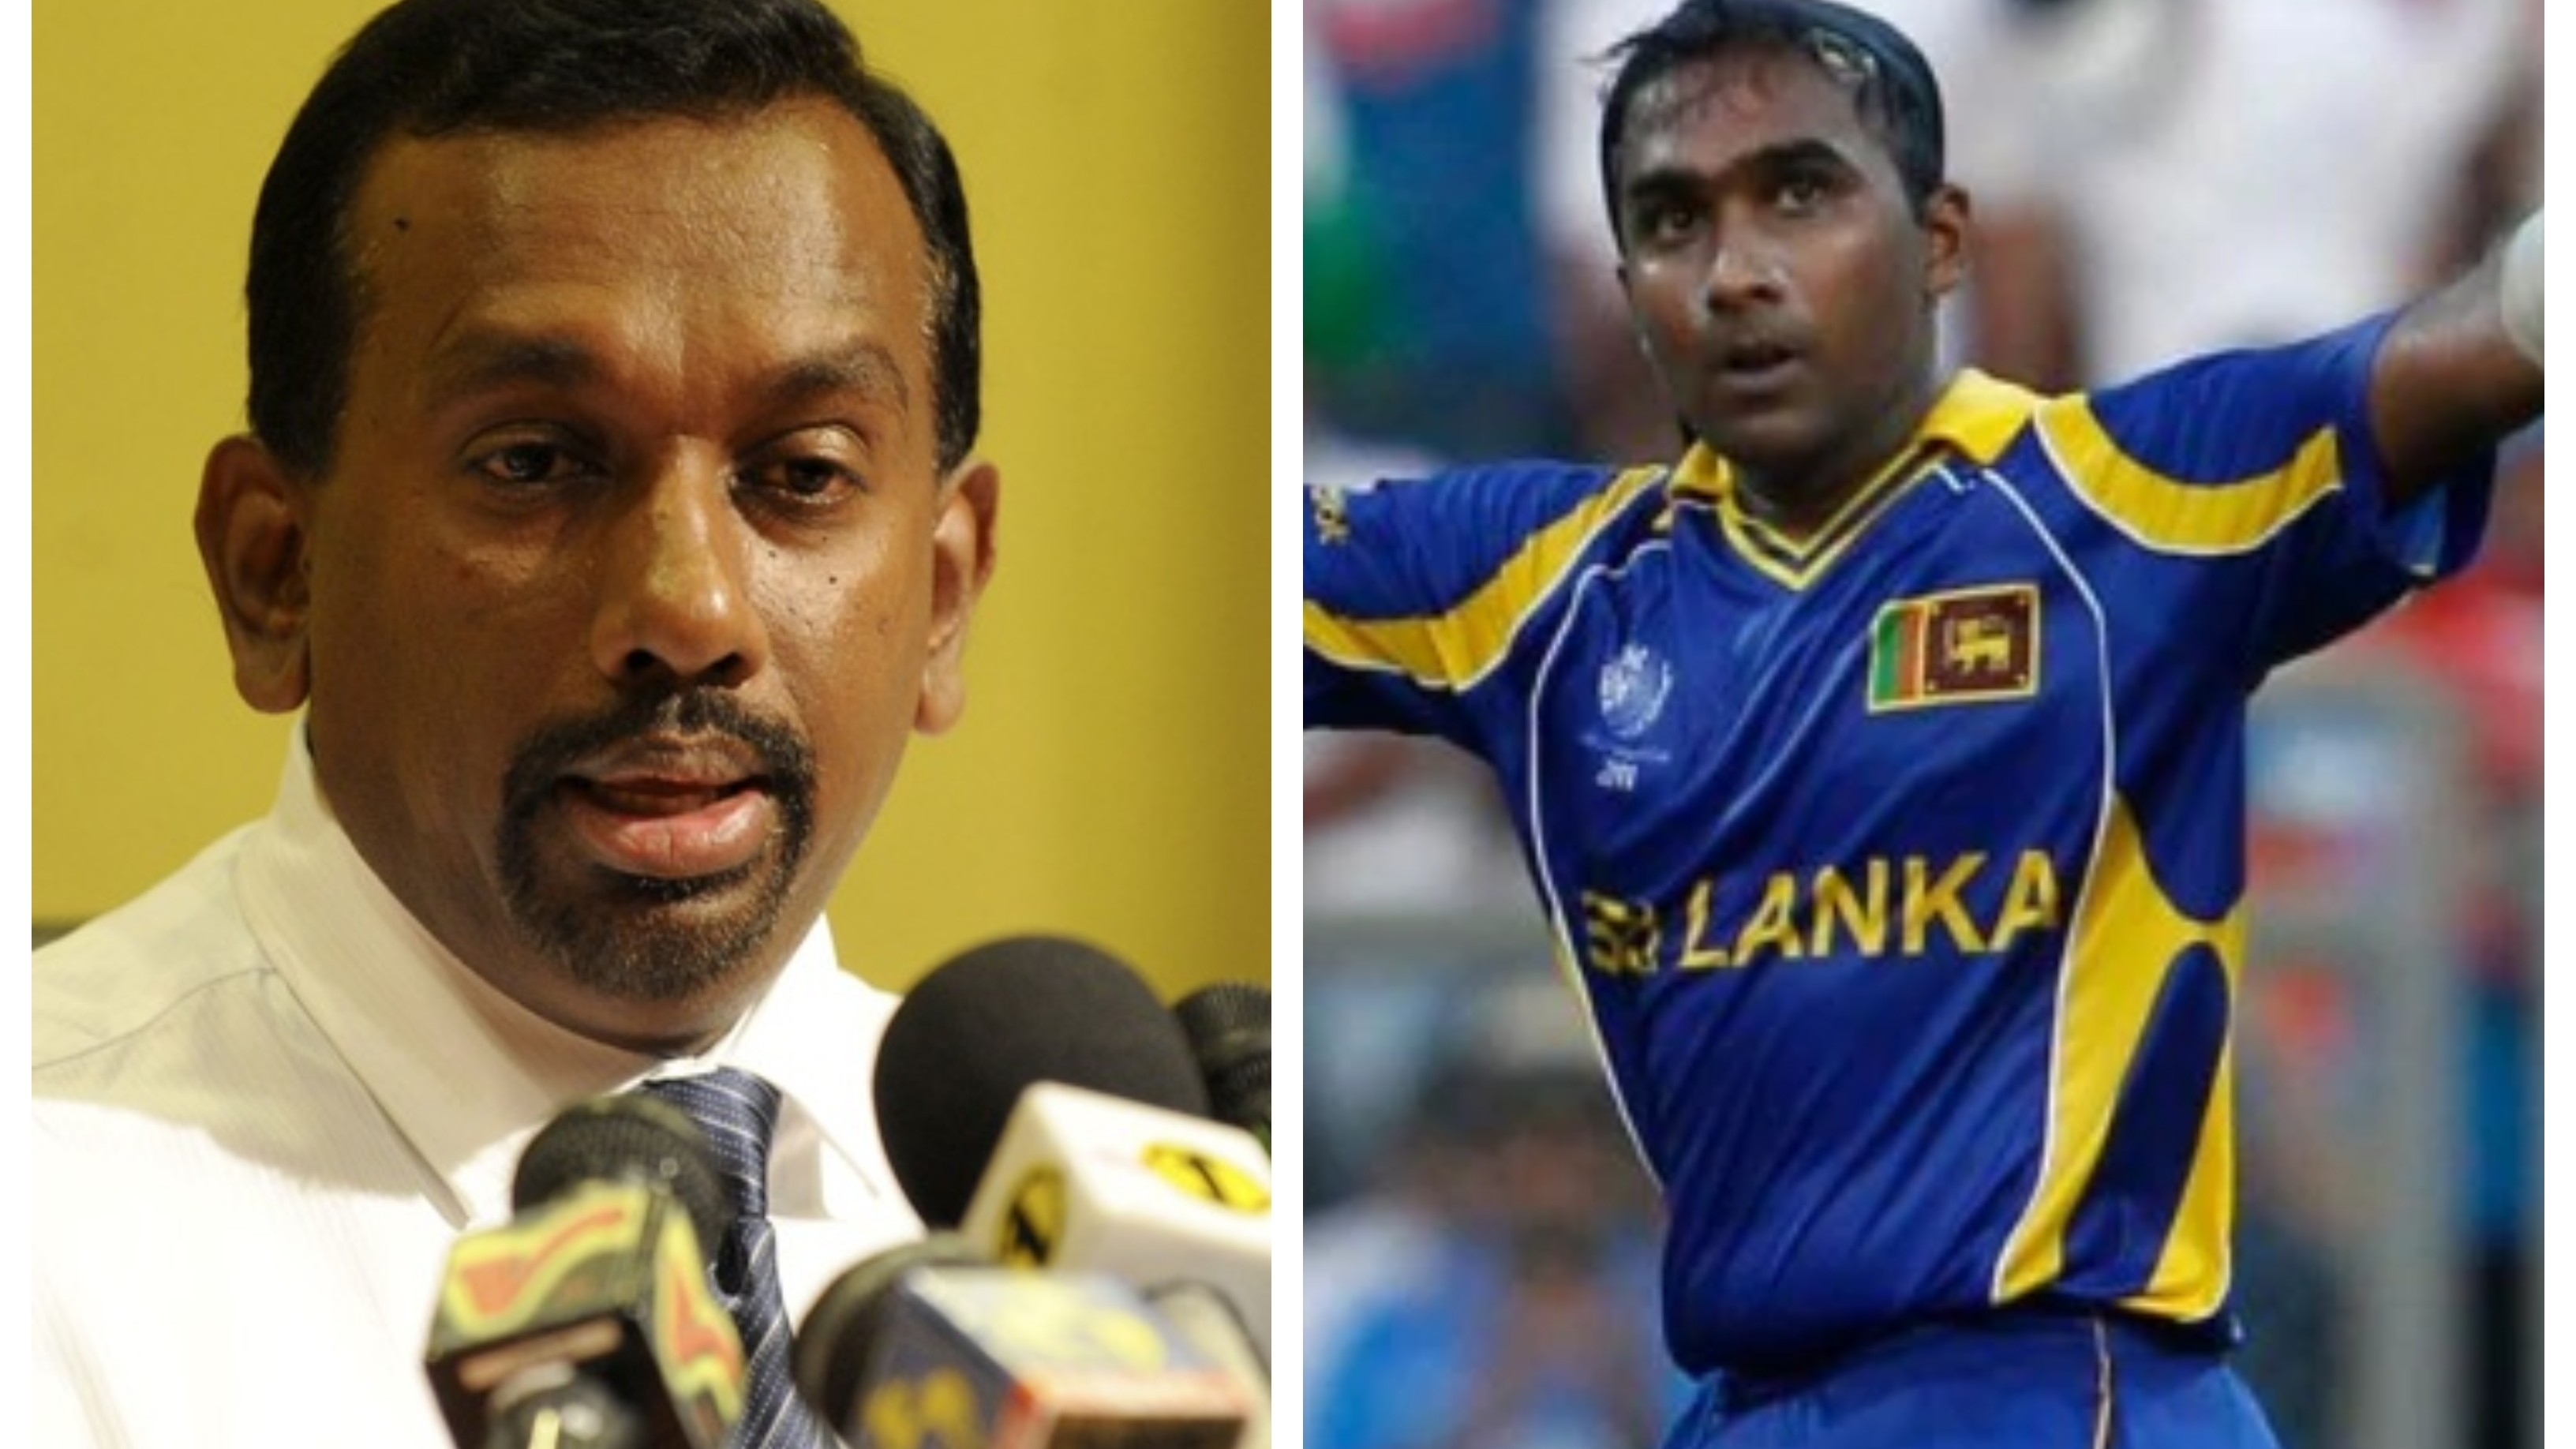 Jayawardena reacts after ex-Sri Lanka sports minister's clarification on fixing claims in 2011 WC final